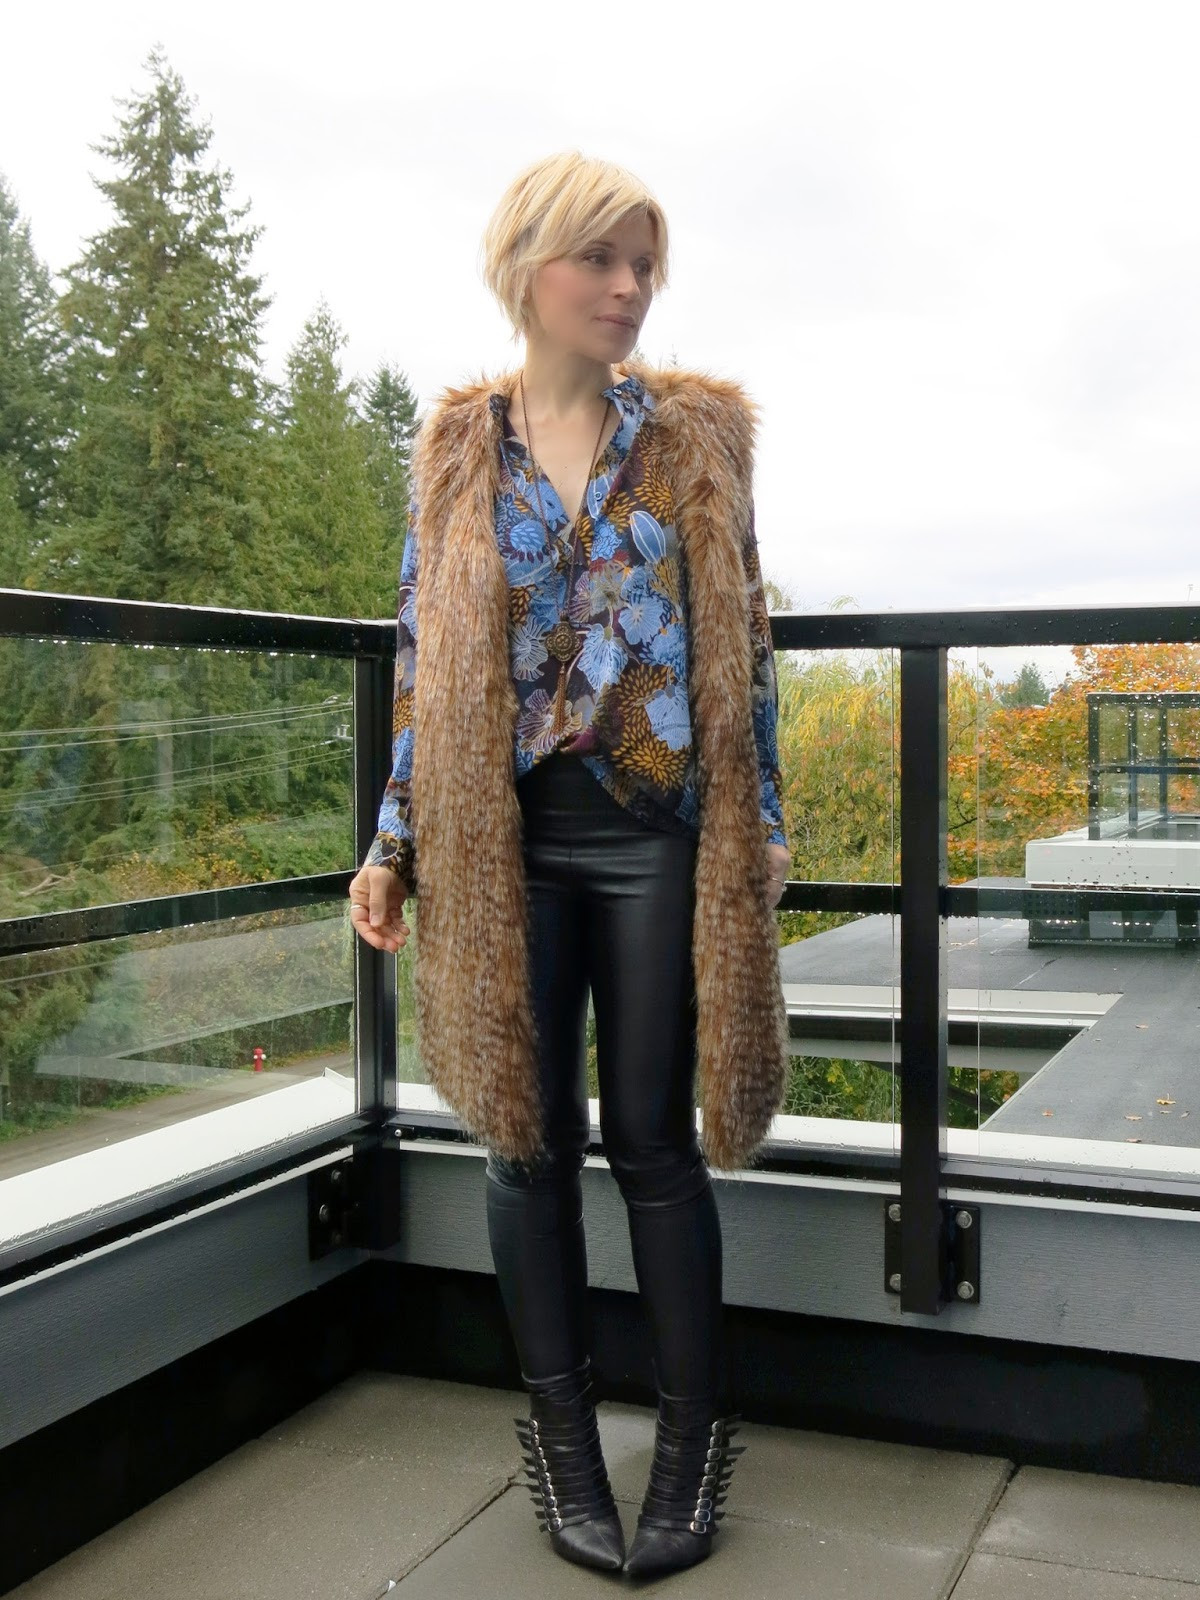 styling faux-leather leggings with a floral blouse, long furry vest, and rockerish booties